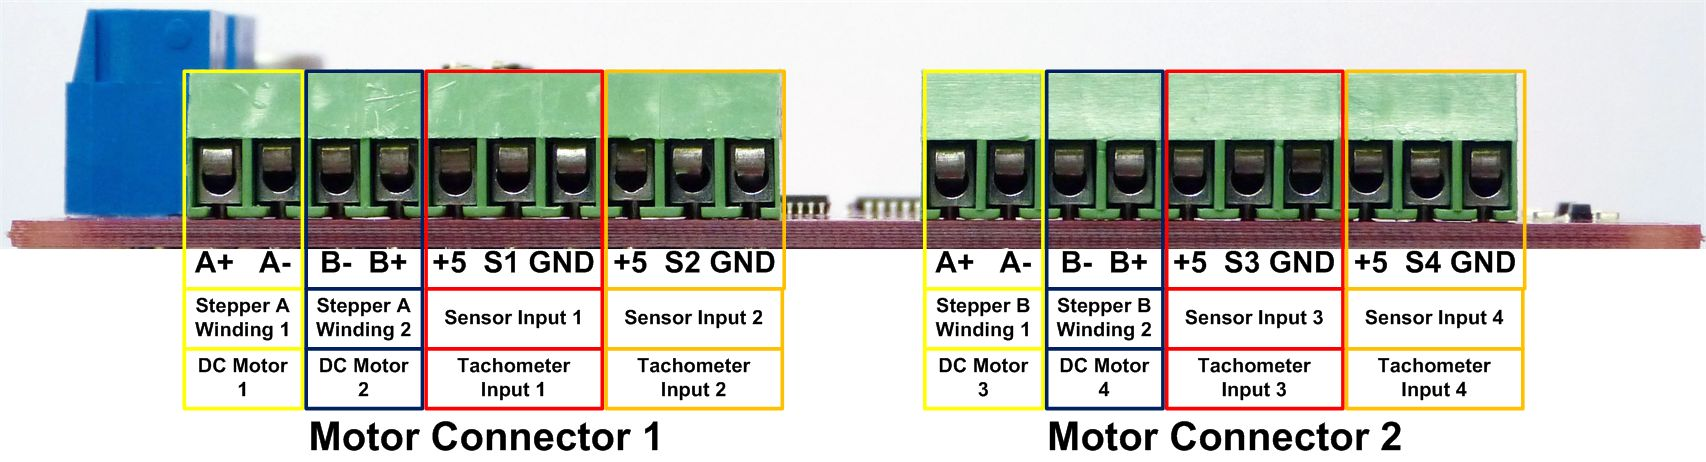 Motorplate Users Guide Pi Plates Power Supply For Stepper Motor Drive A May Each Connector Can Two Dc Motors Total Of 4 Per Board The Pictures And Images Below Illustrate How These Connections Should Be